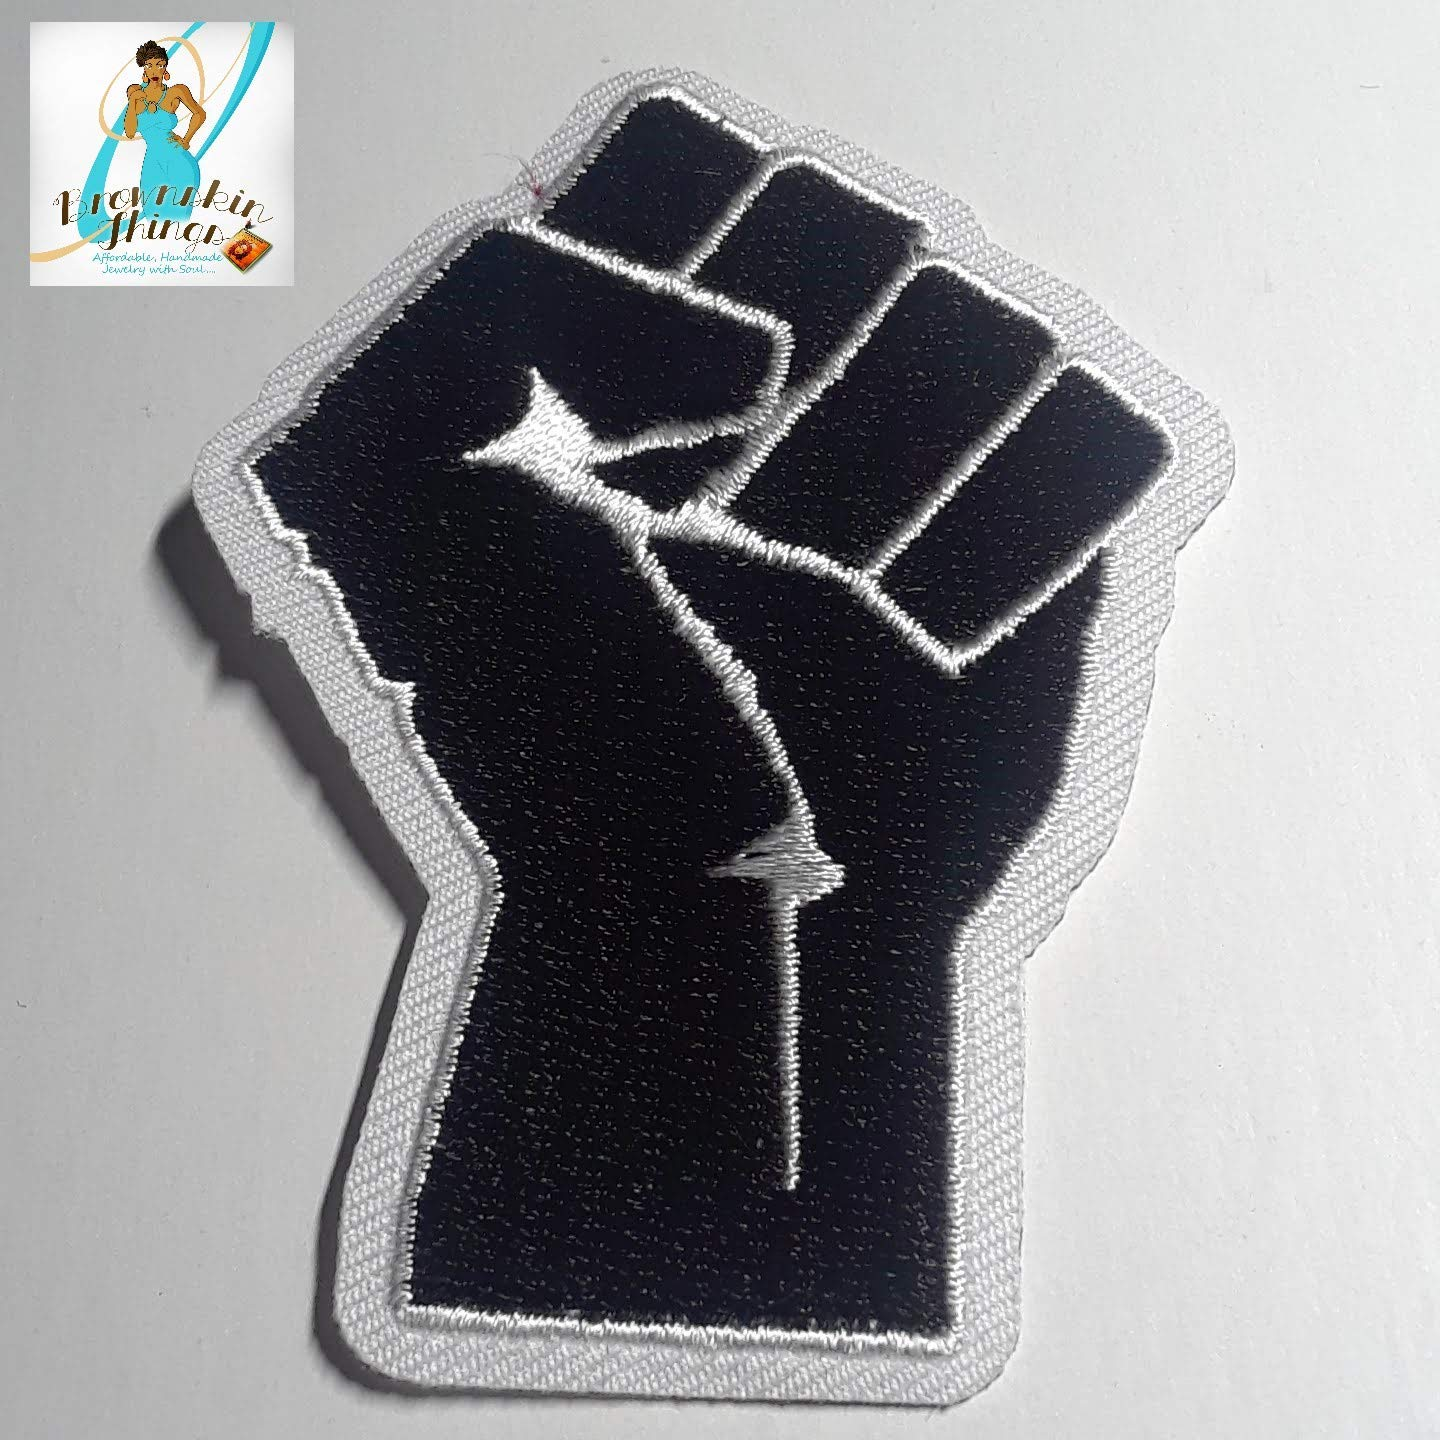 Fist Up Patch 3.75x2.75 Iron On Embroidery DIY Afrocentric Patches